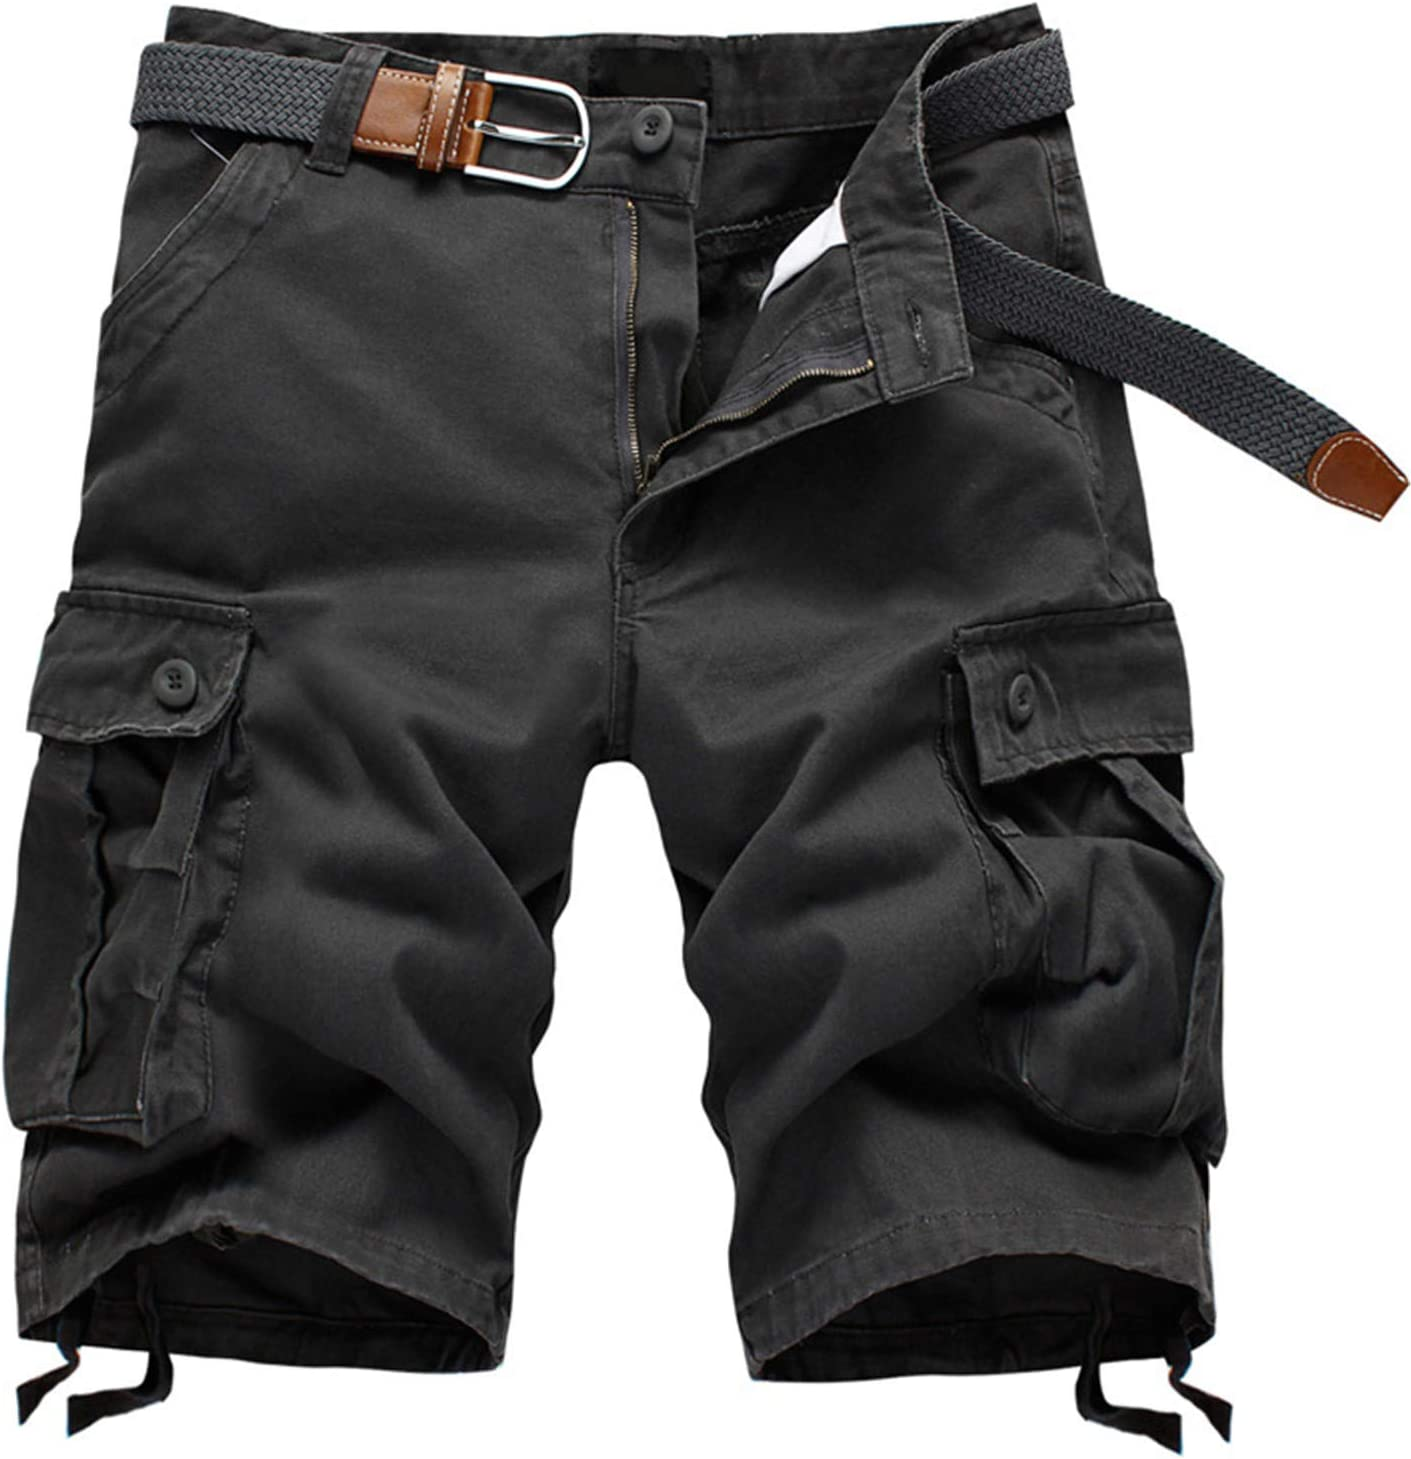 Yiqinyuan Men's Casual Shorts Baggy Multi Pocket Army Military Zipper Cargo Shorts Plus Size Breeches Male Tactical Shorts